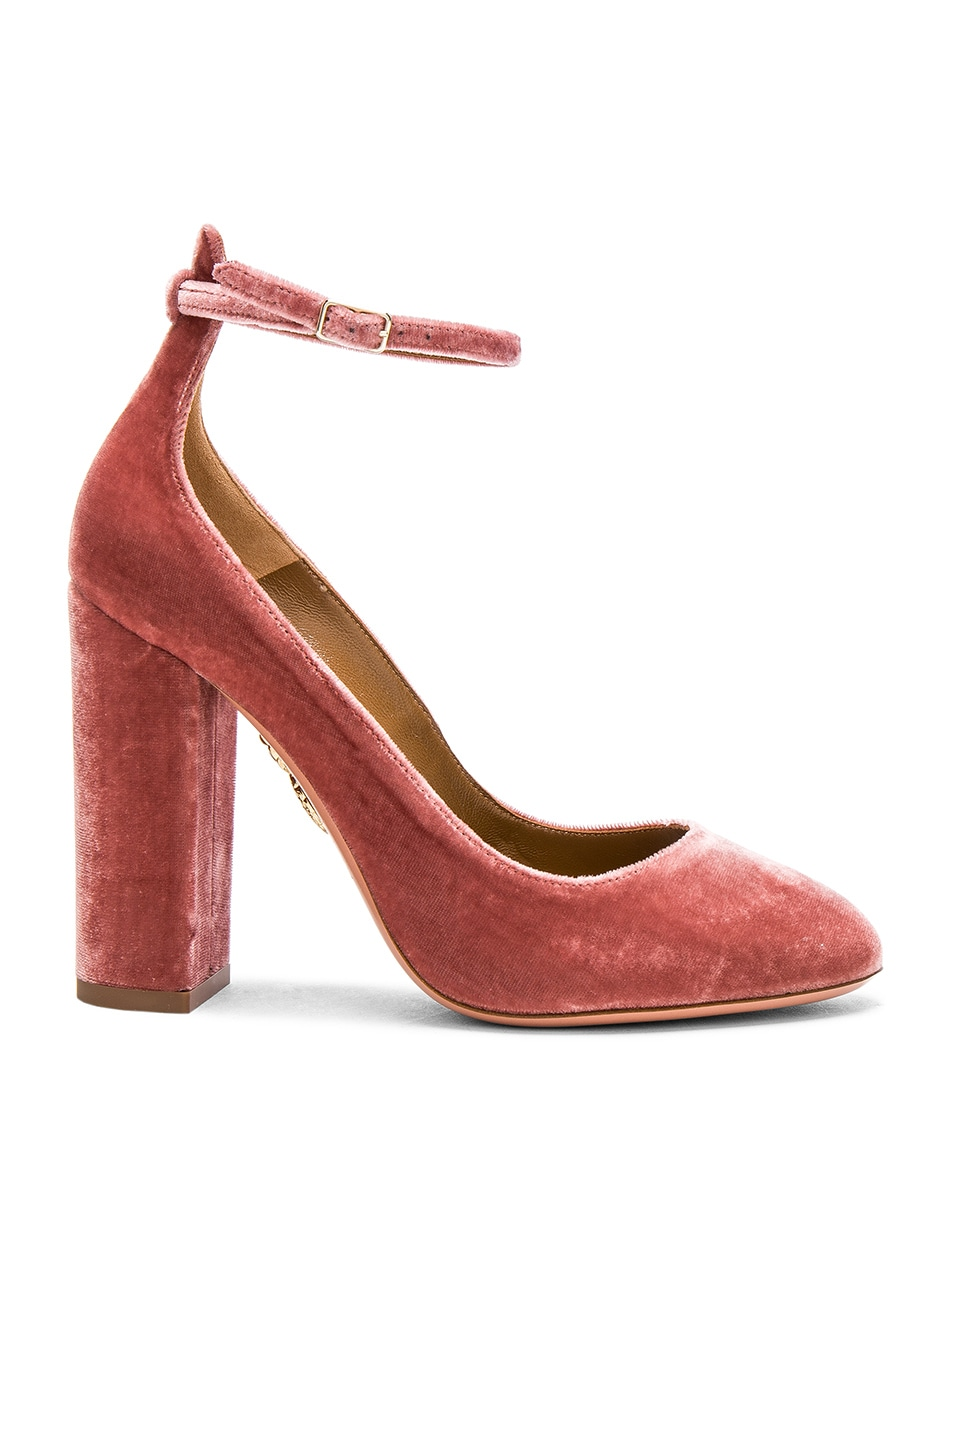 f7619b01c7b4 Image 1 of Aquazzura Velvet Alix Pumps in Antique Rose